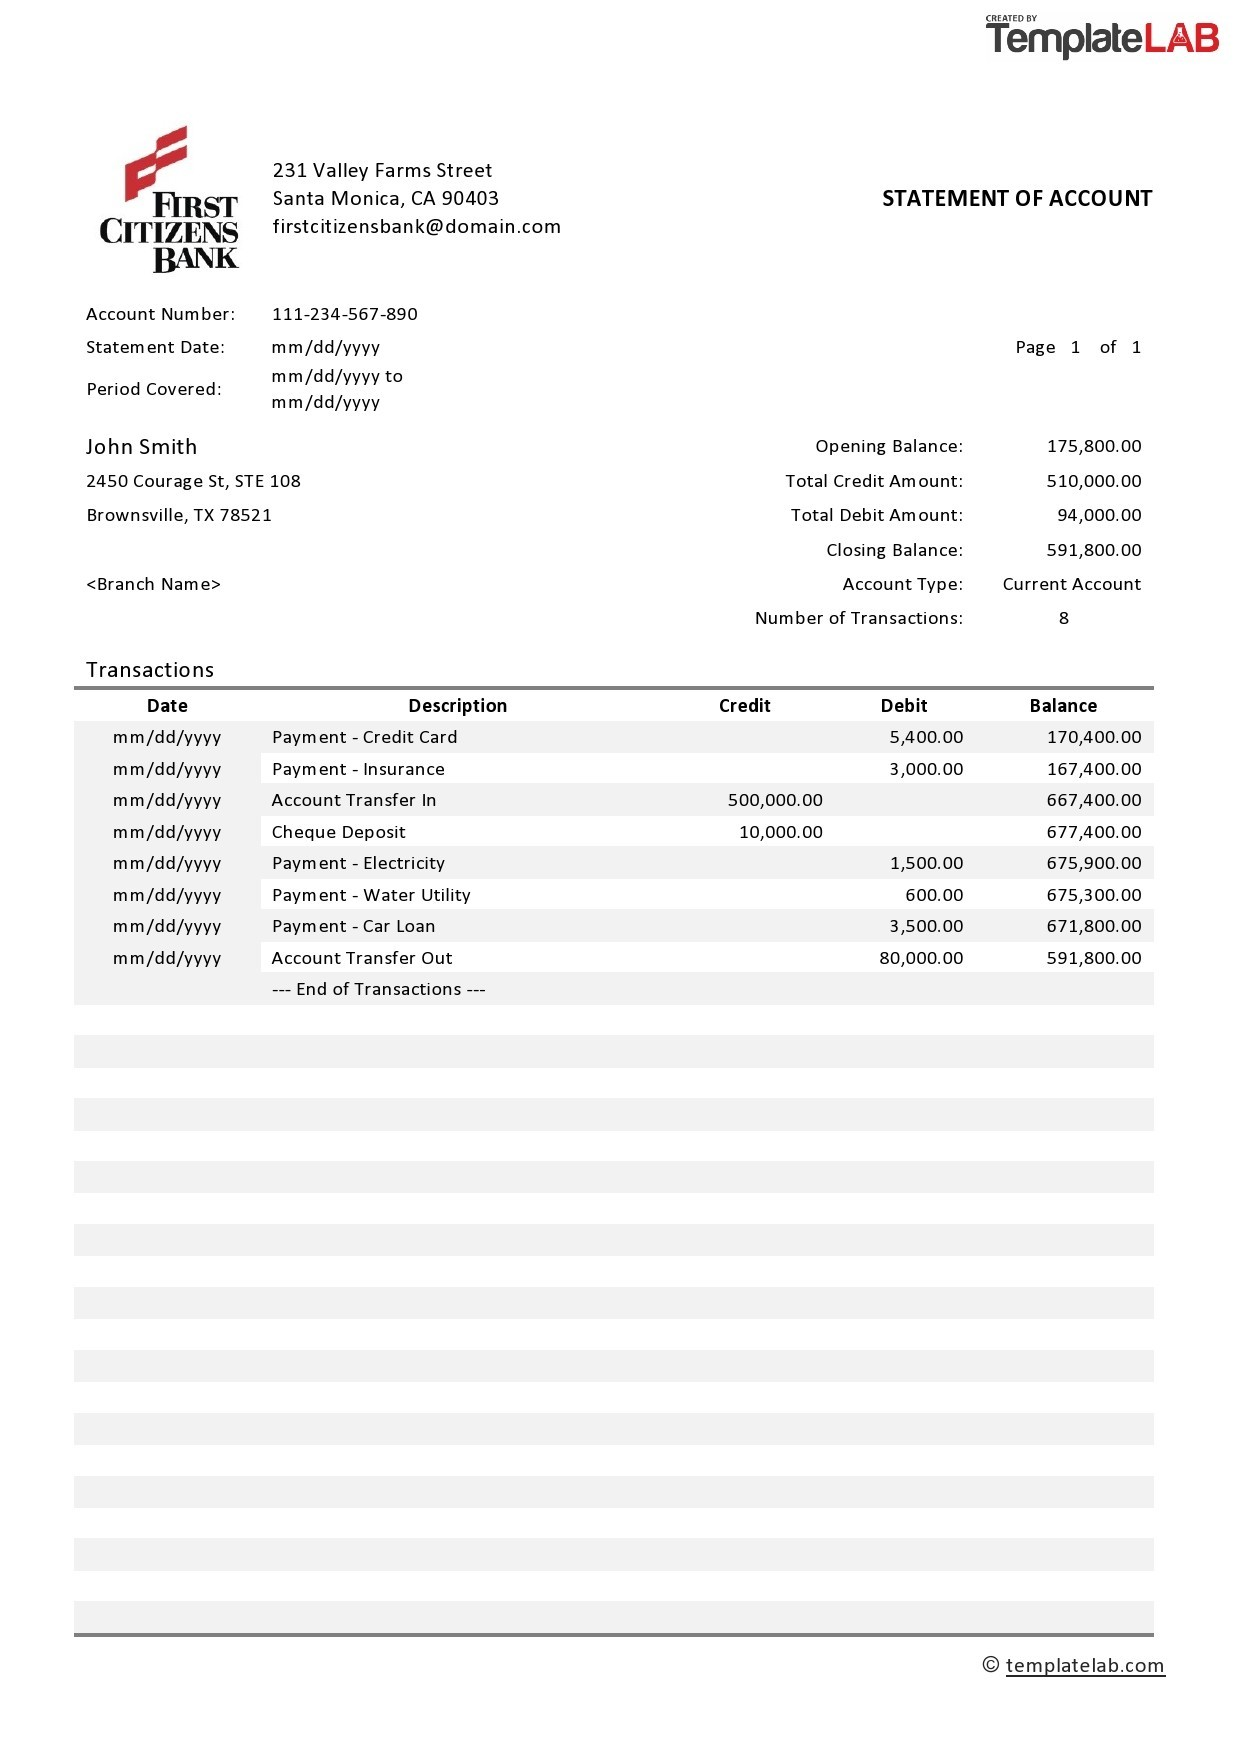 23 Editable Bank Statement Templates Free ᐅ Templatelab